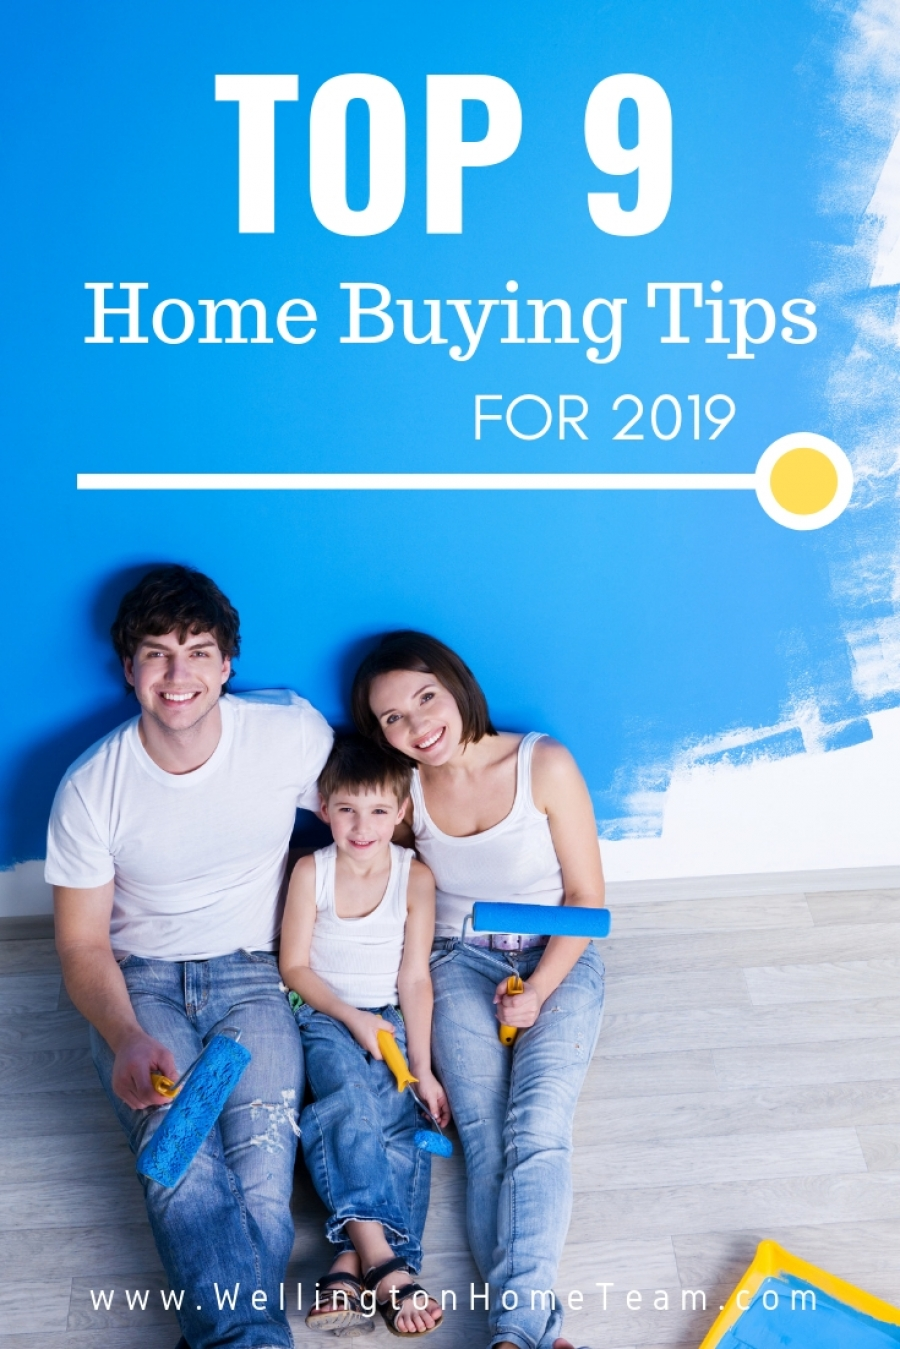 TOP 9 Home Buying Tips for 2019